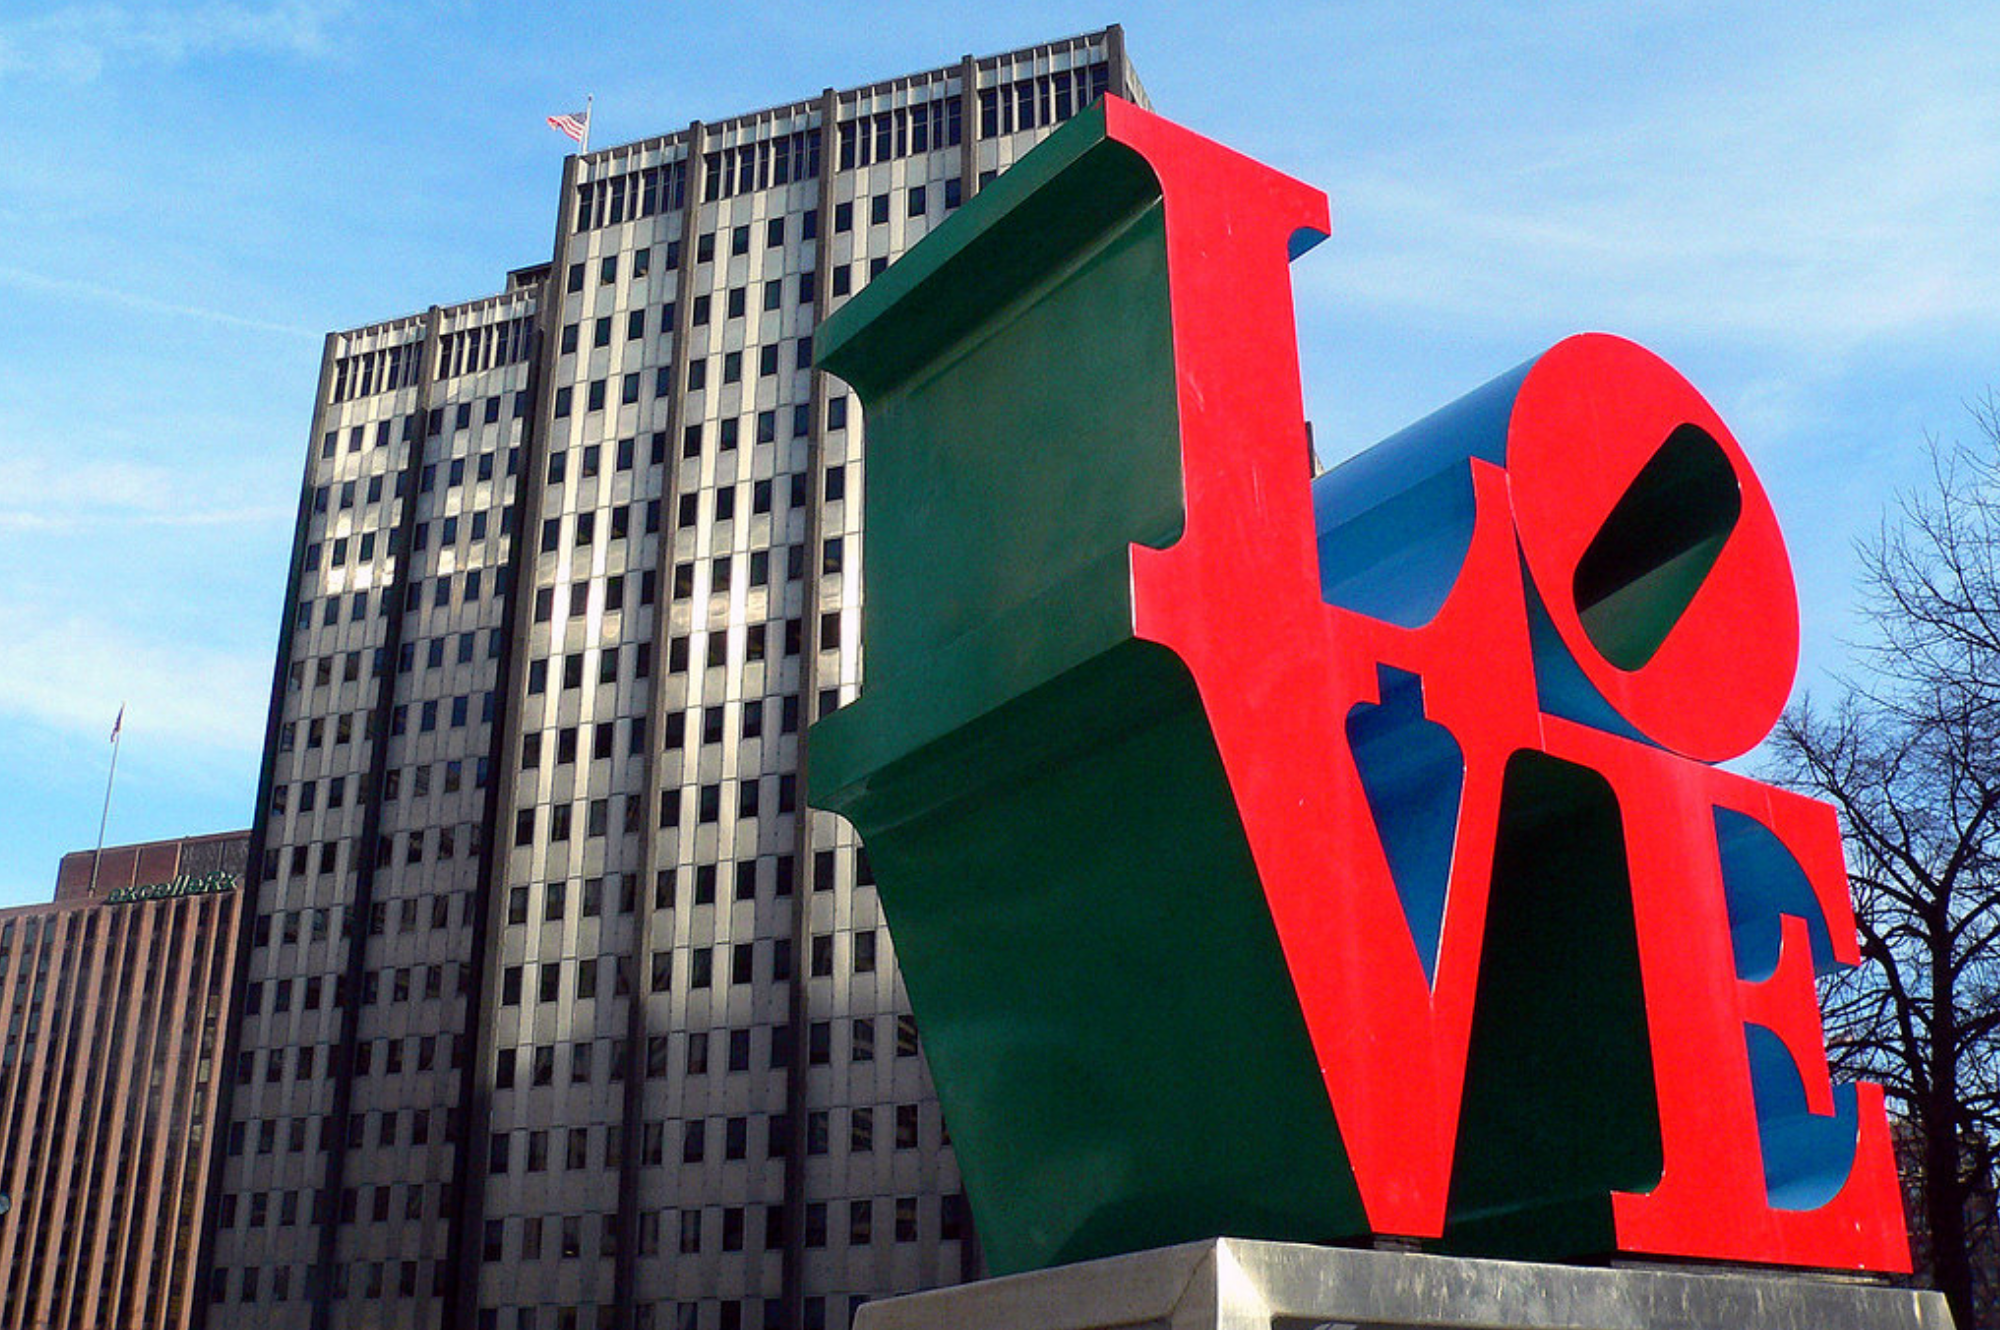 Top family friendly things to do in Philadelphia - Top things to do with kids in Philadelphia -The famous Love Statue